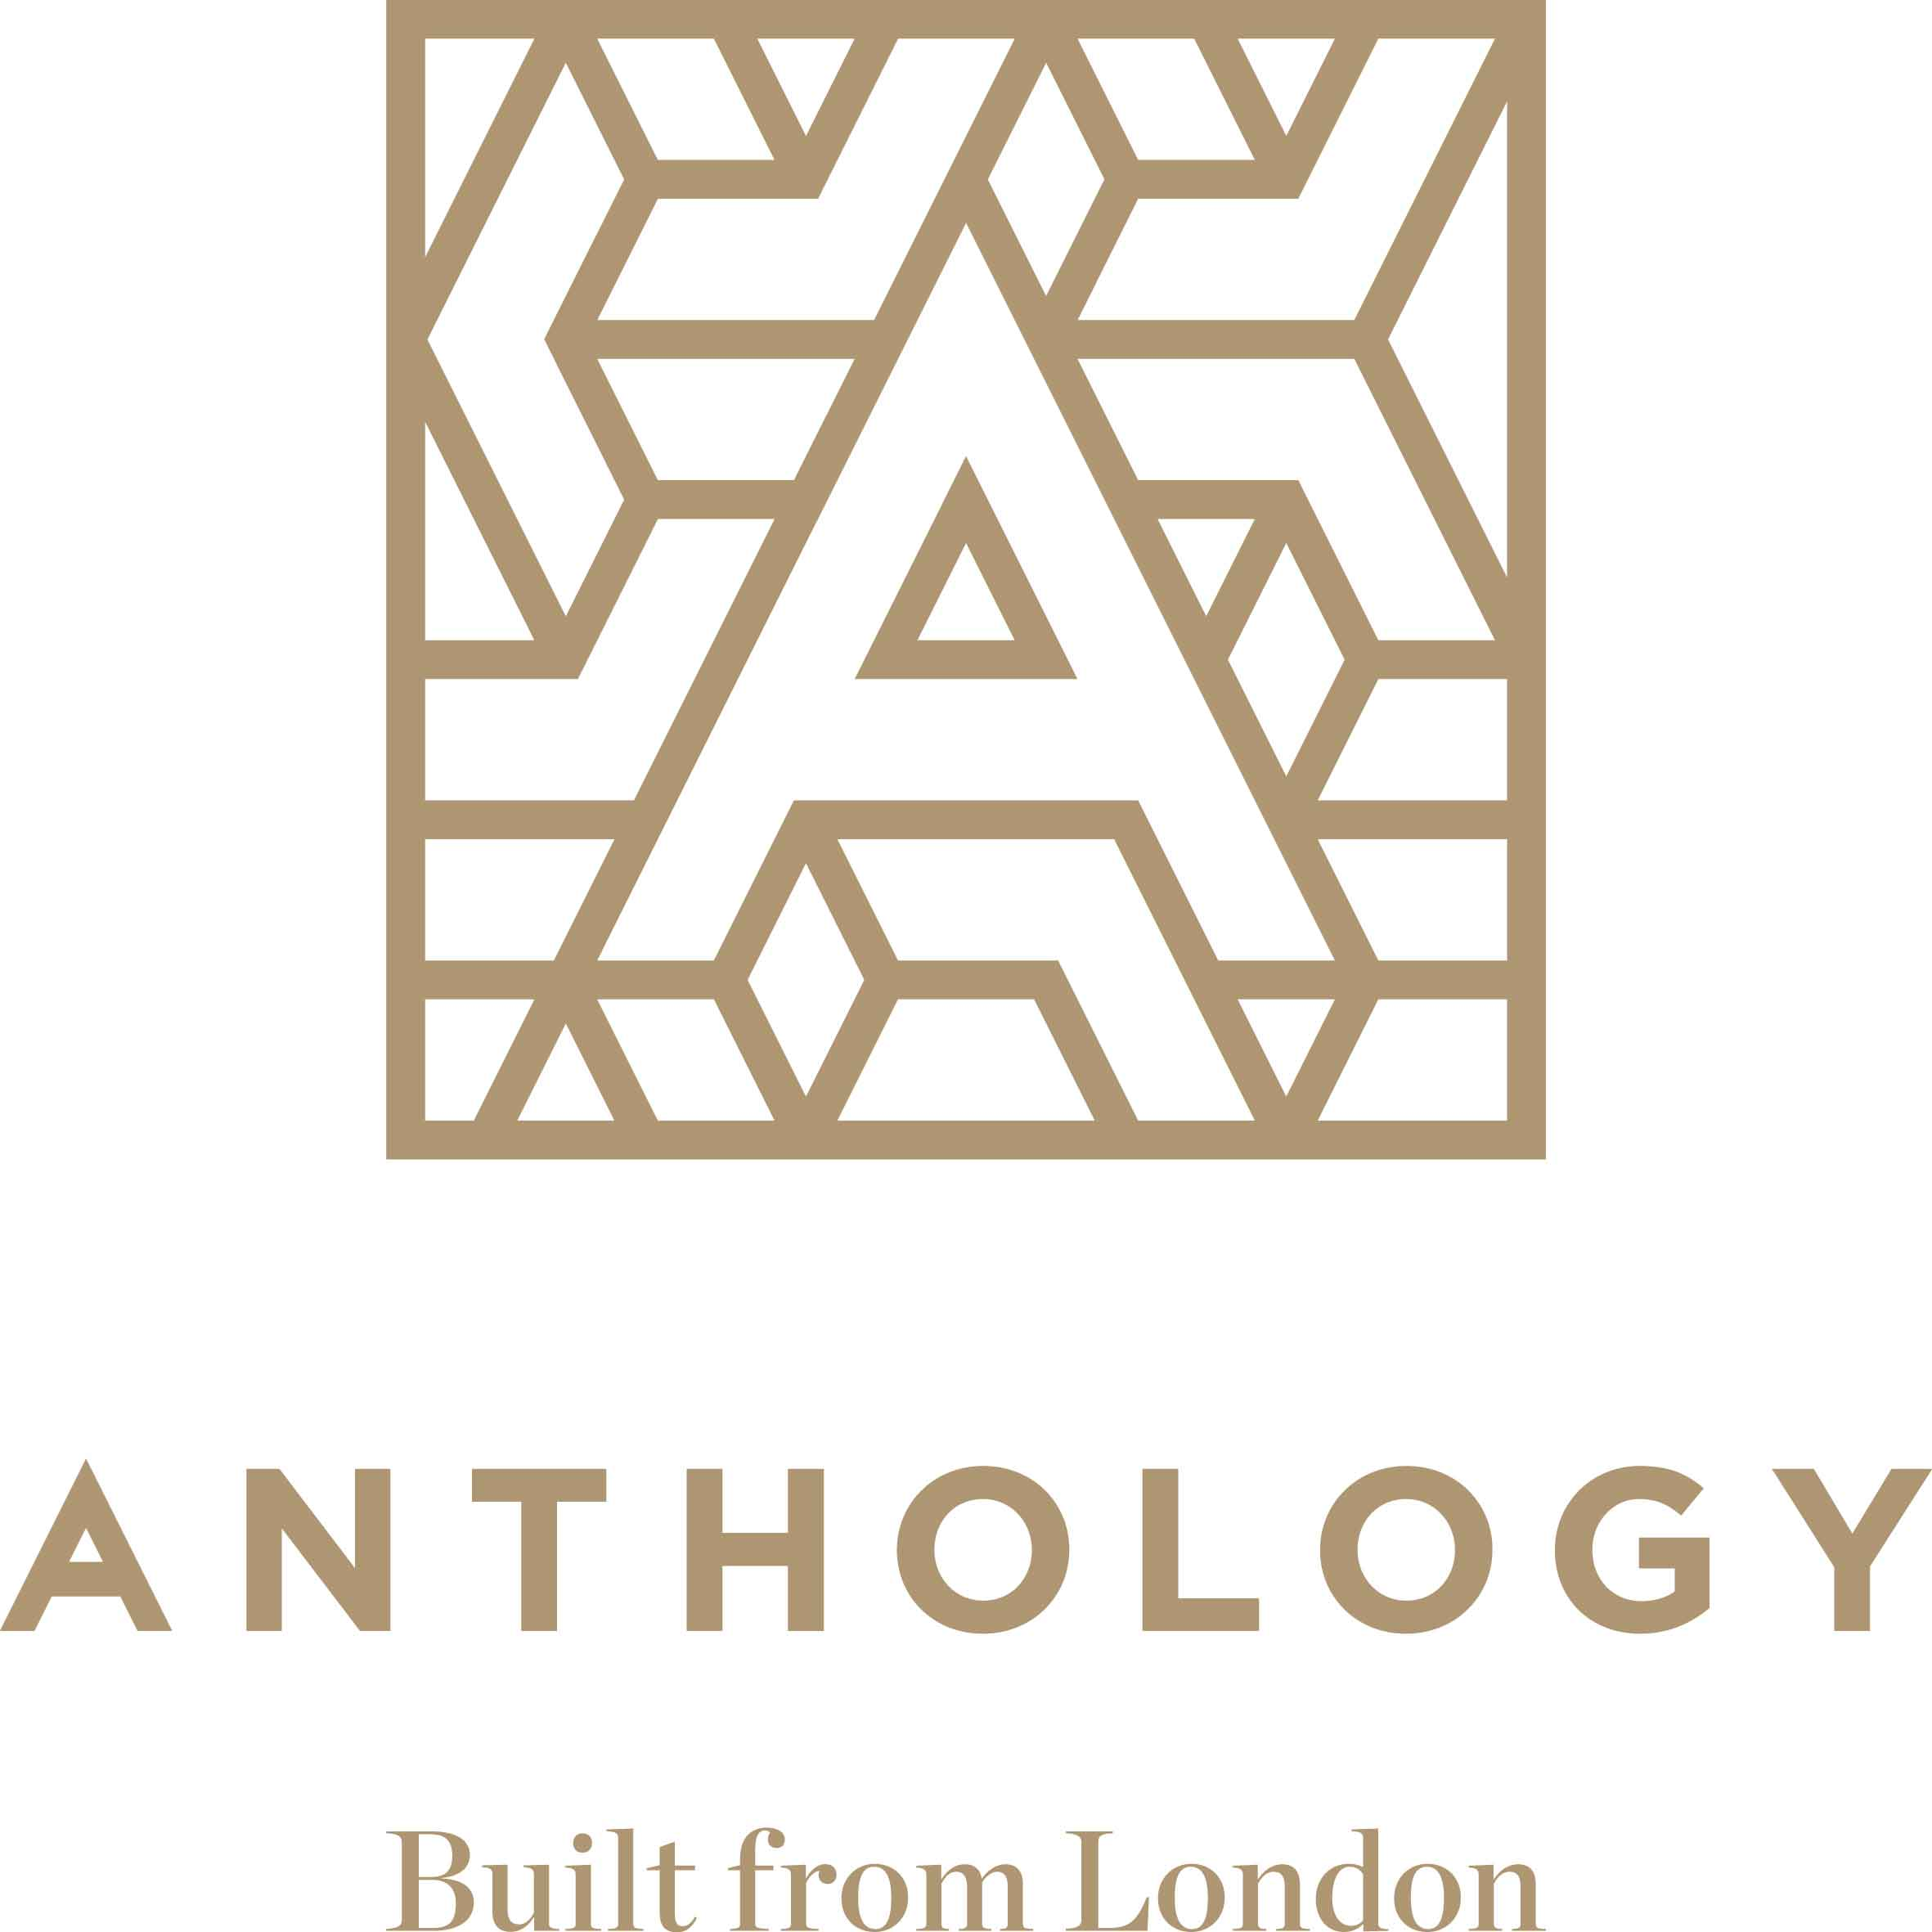 https://anthology.london/